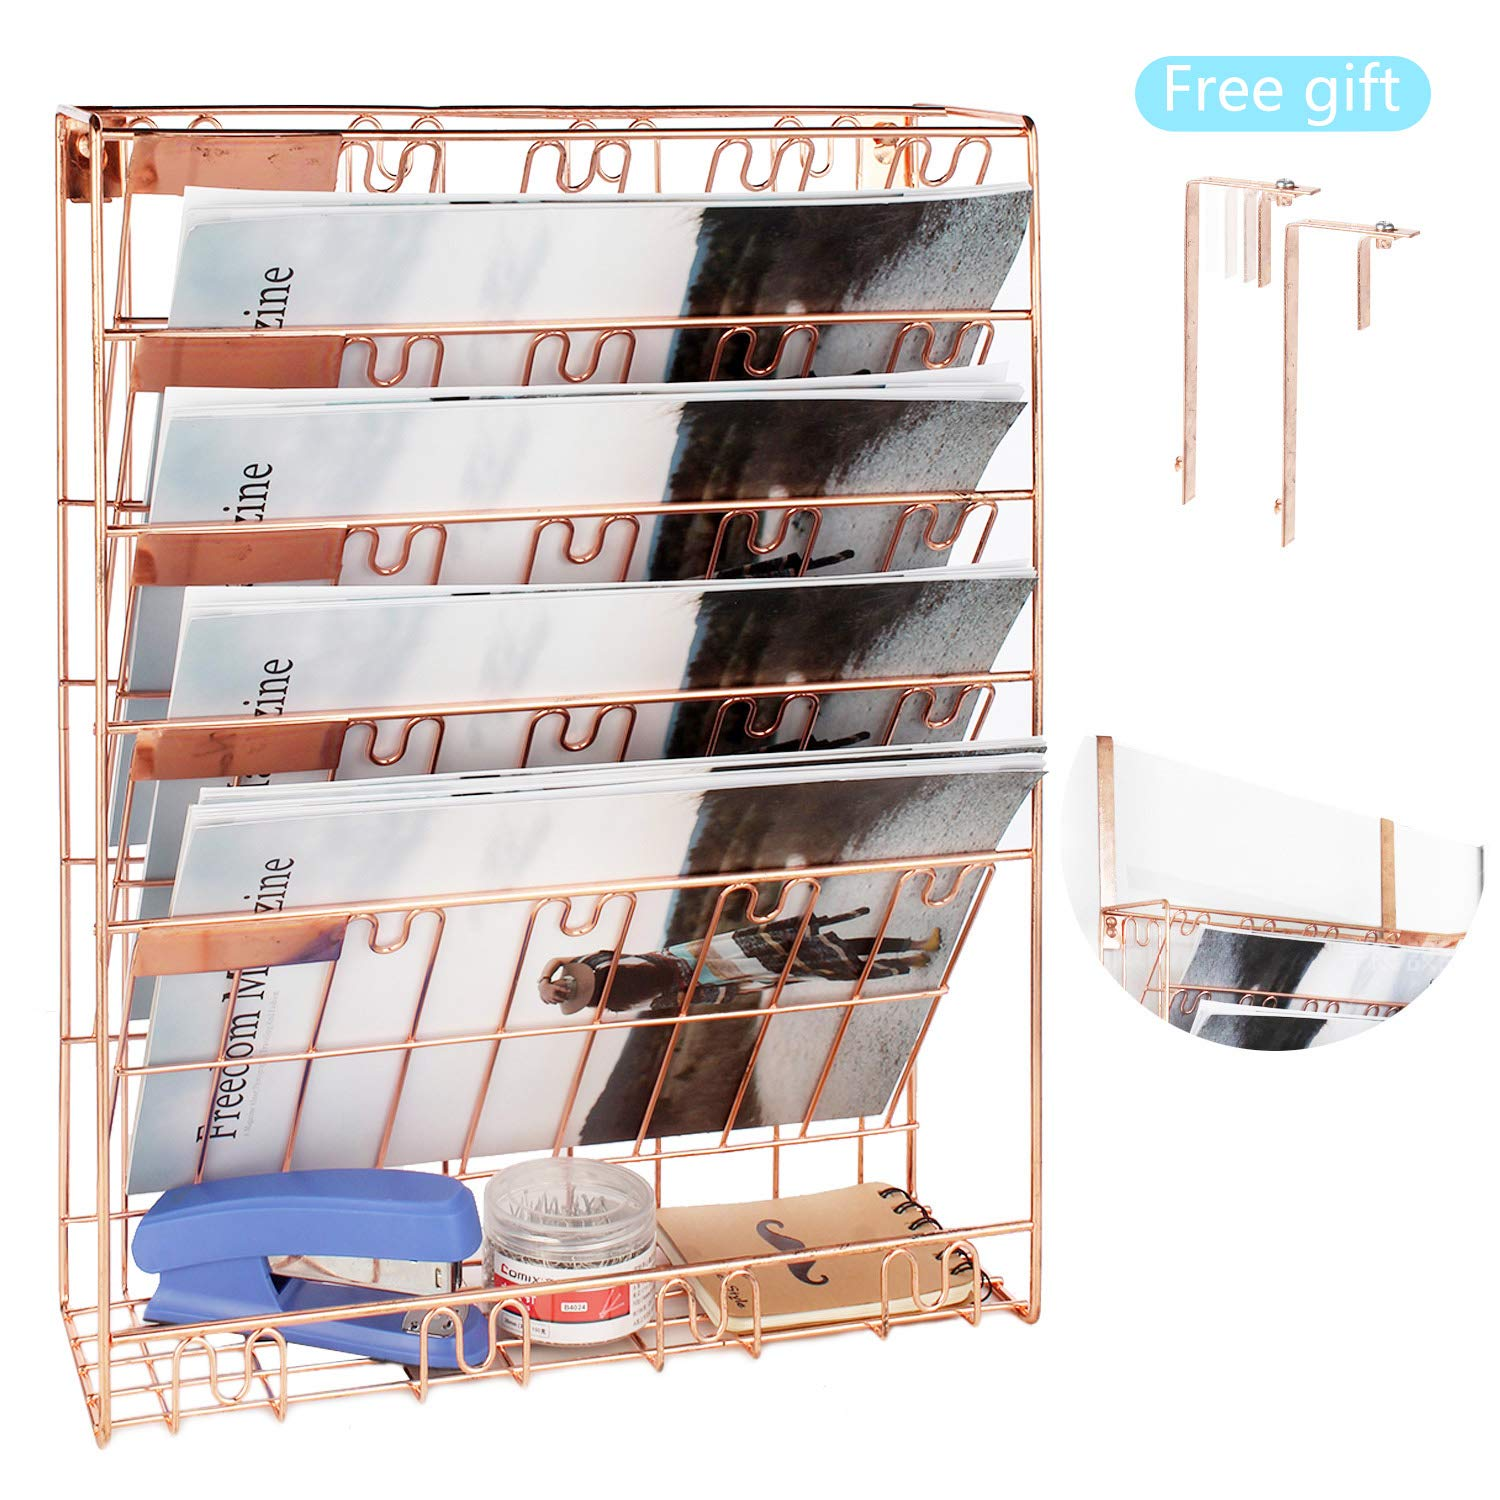 Veesun Wall File Holder Organizer,Hanging Metal Mesh Wall Magazine Rack,Hanging Wall Document Paper Organizer for Cubicle Partition Office Home,Deep Gold.